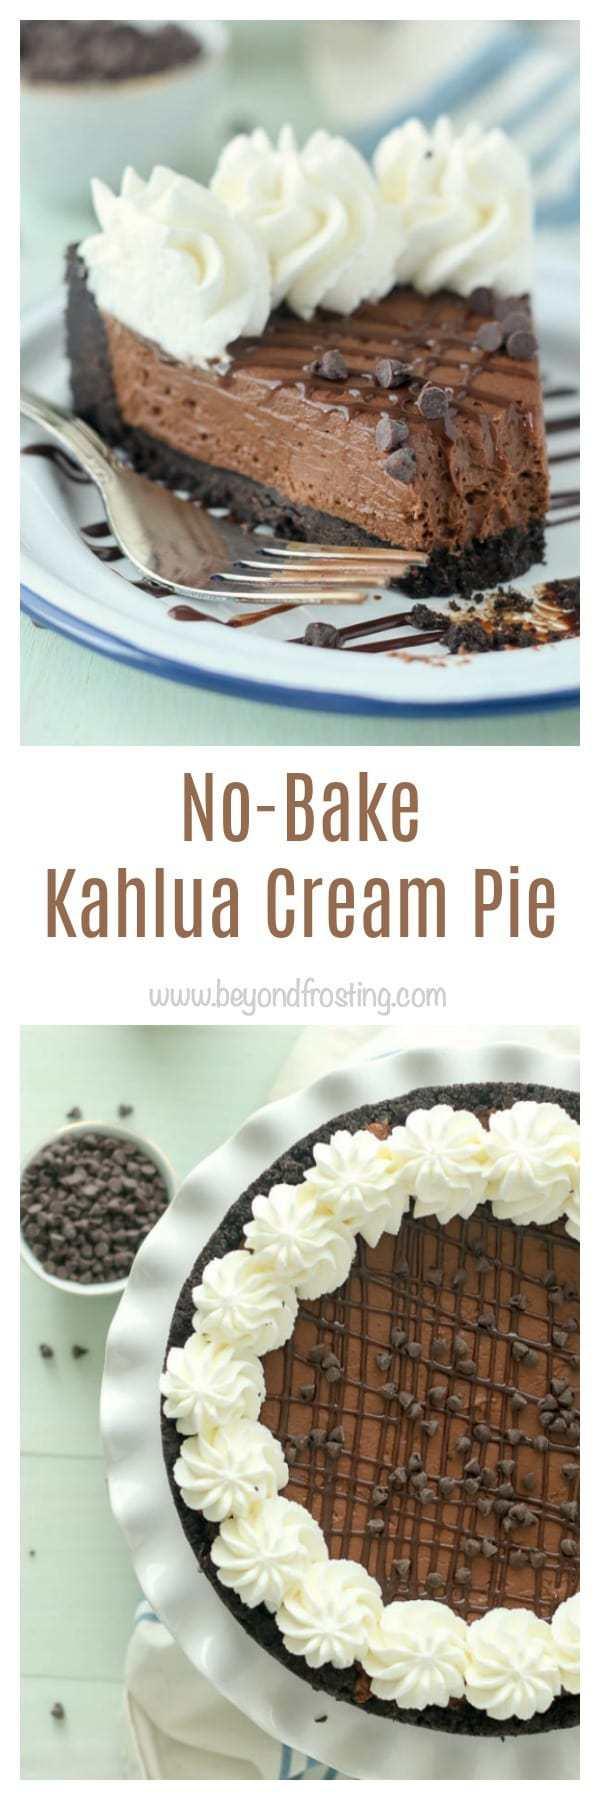 This homemade No-Bake Kahlua Cream Pie is a chocolatey Kahlua-spiked pudding with a thick Oreo crust.